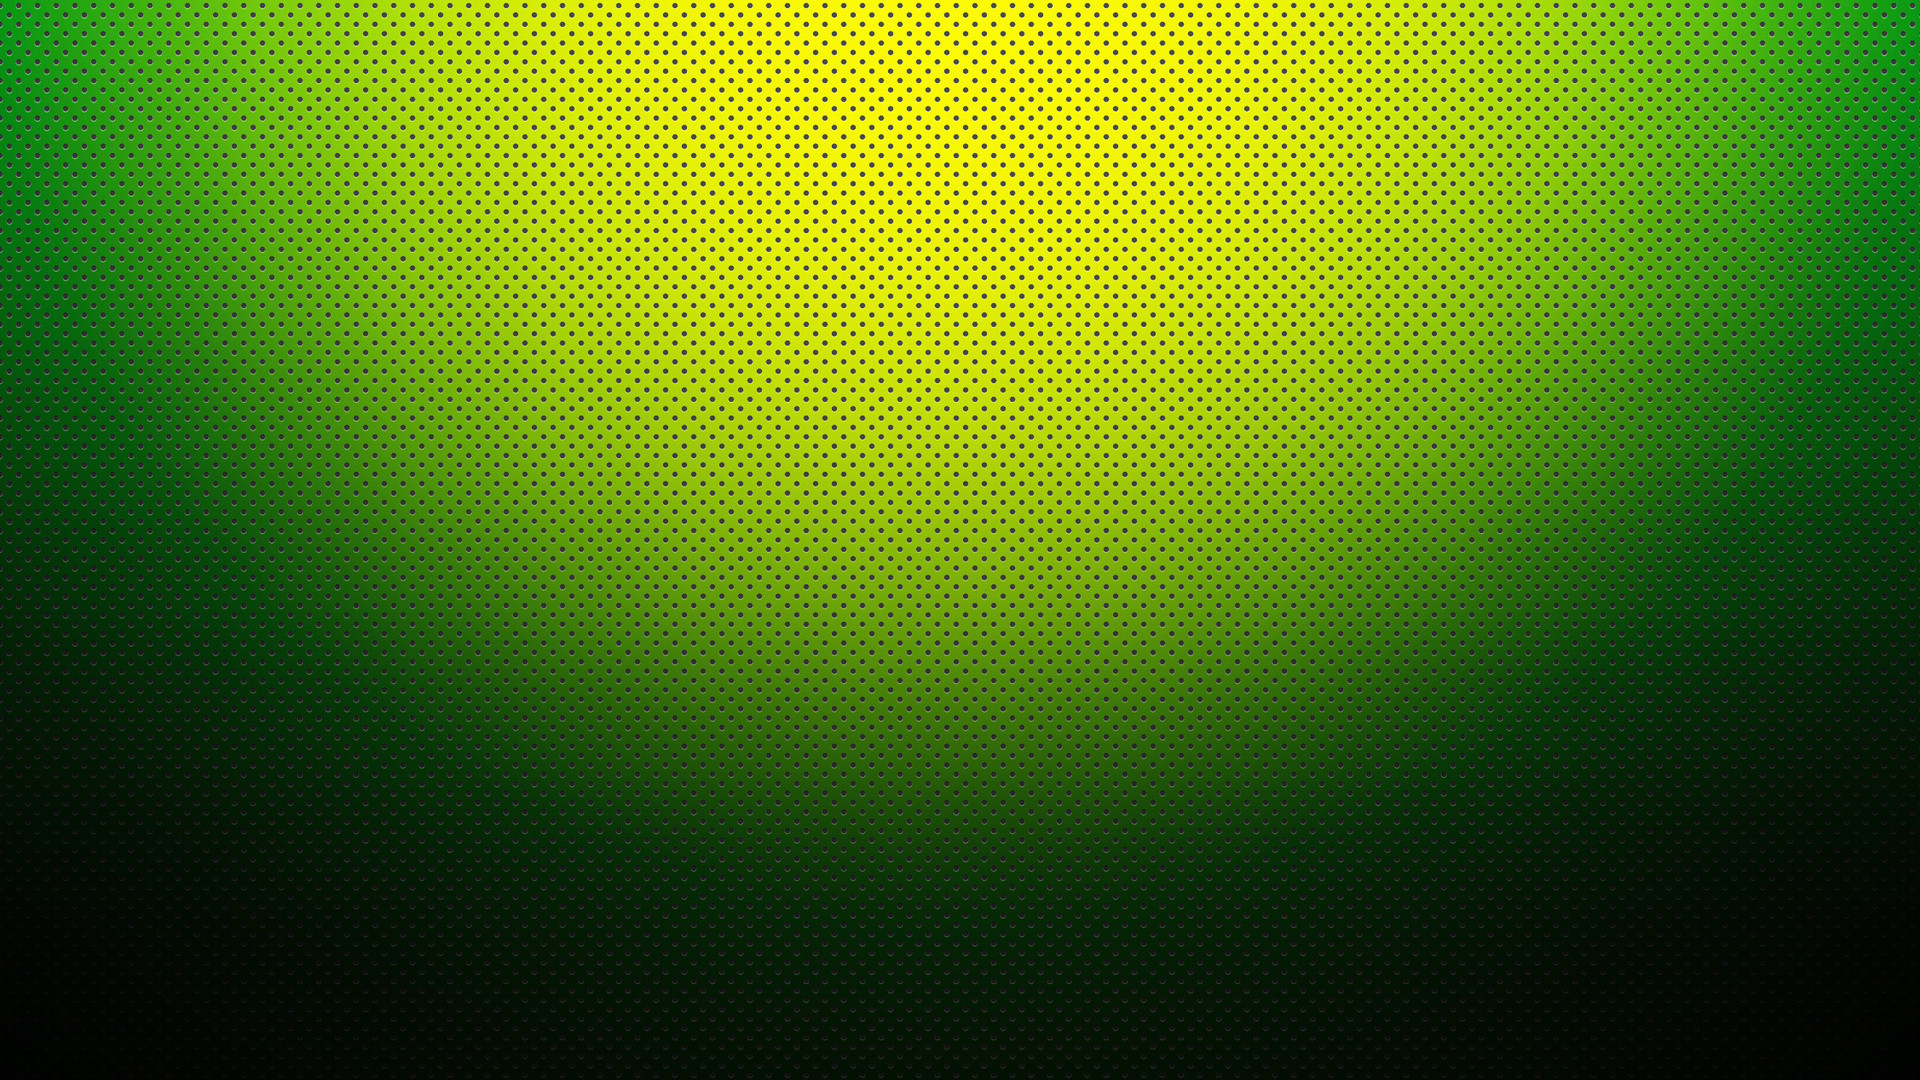 Green Texture Wallpaper Visit Chile